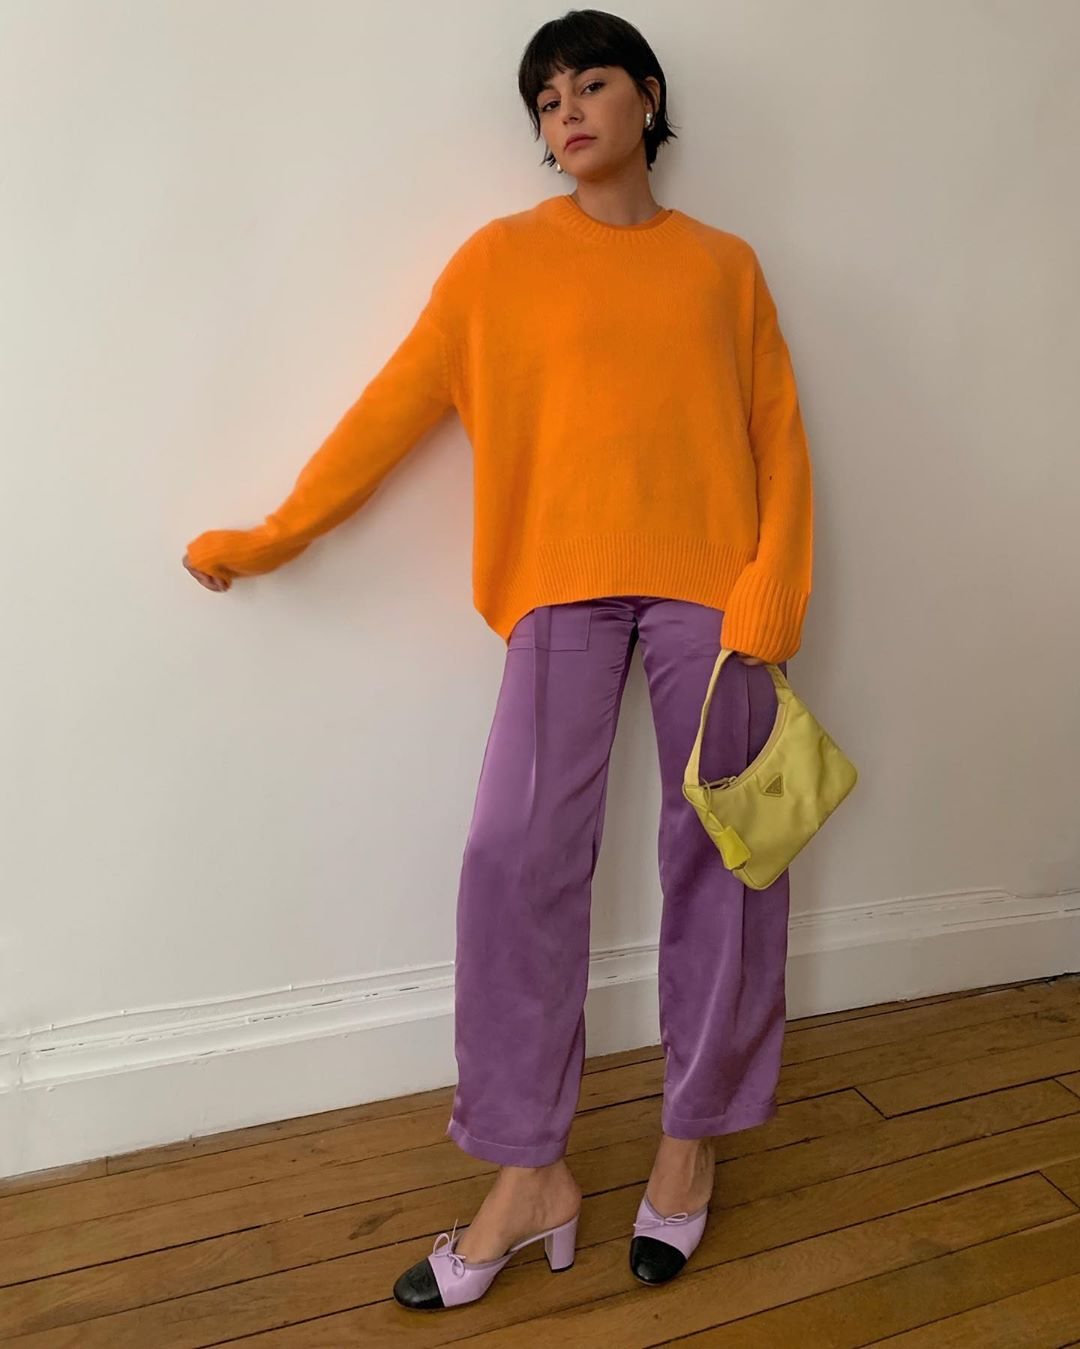 Maria Bernad Makes a Purple Statement